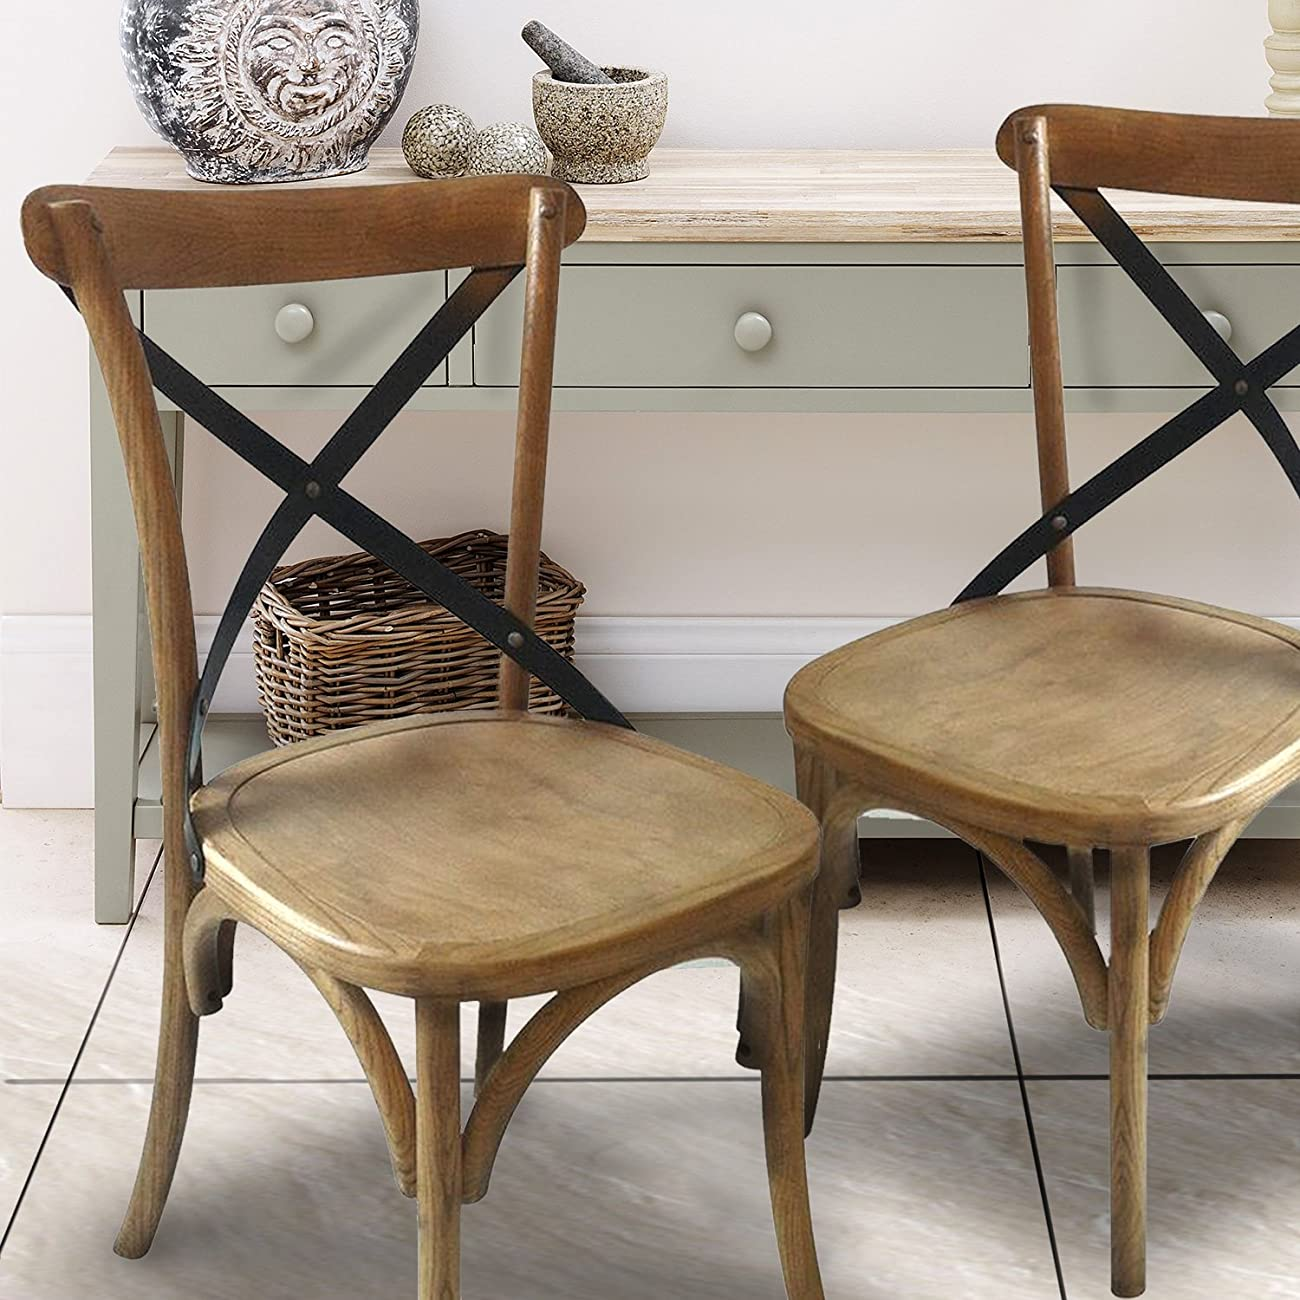 Joveco Vintage style solid wood dining chair - set of 2 1